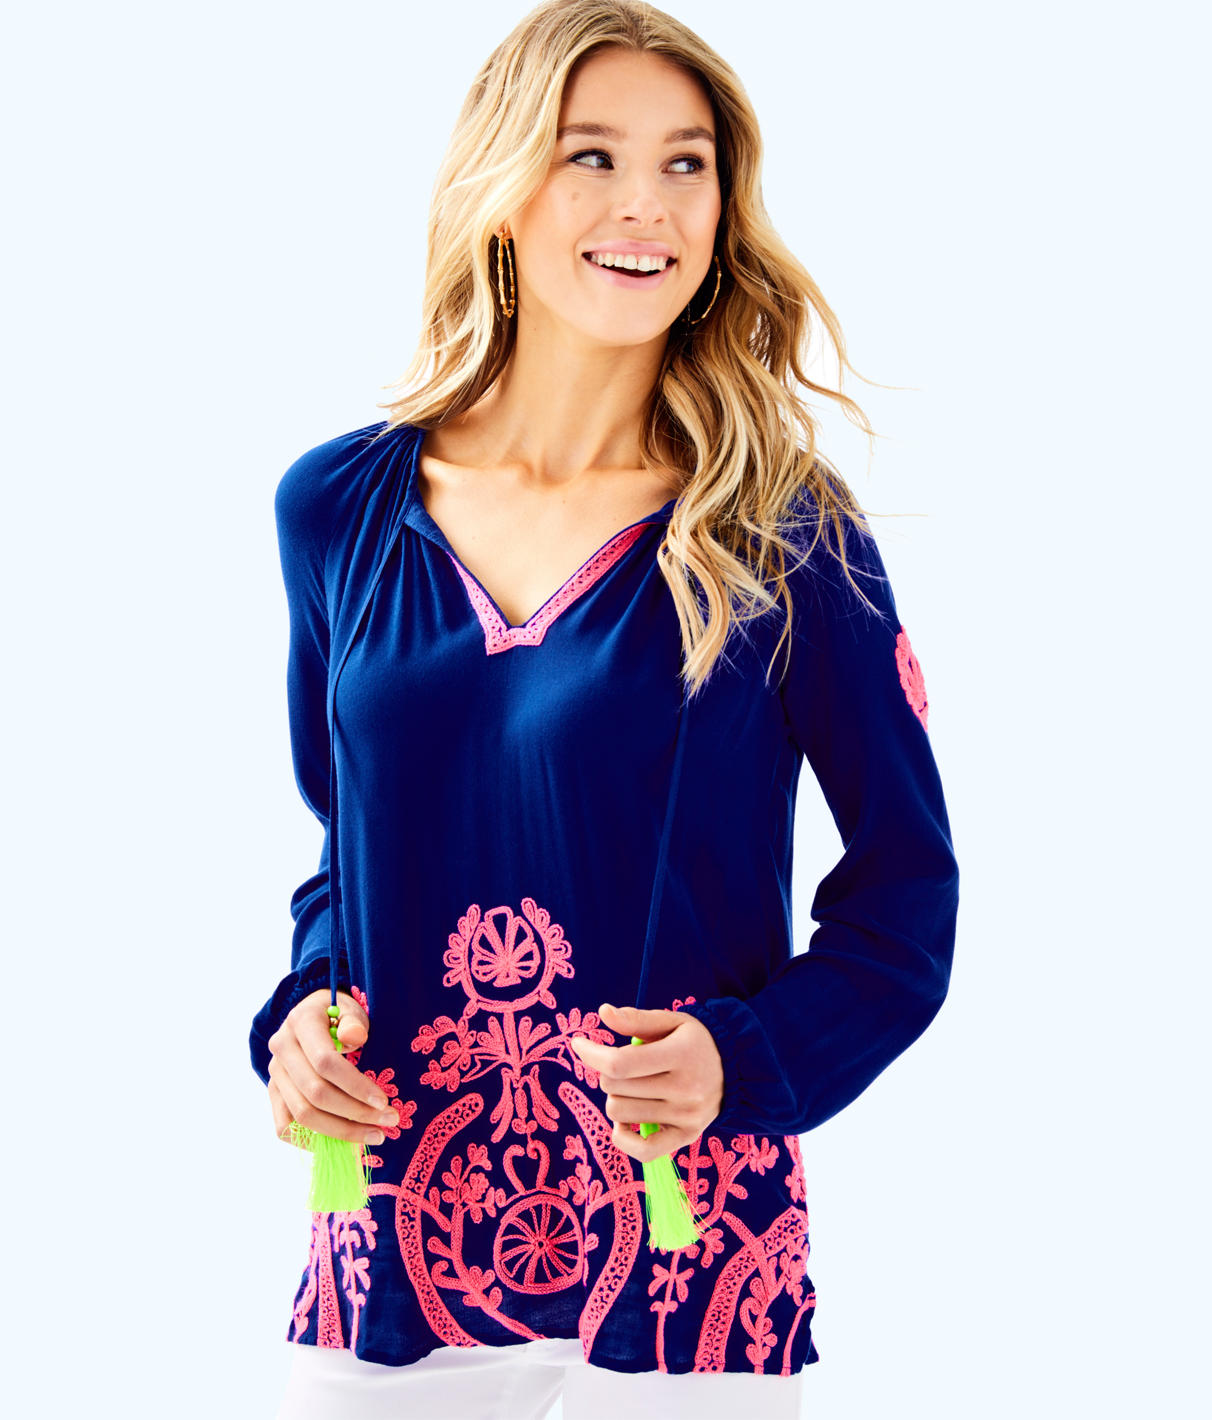 Lilly Pulitzer Lilly Pulitzer Womens Willa Embroidered Top